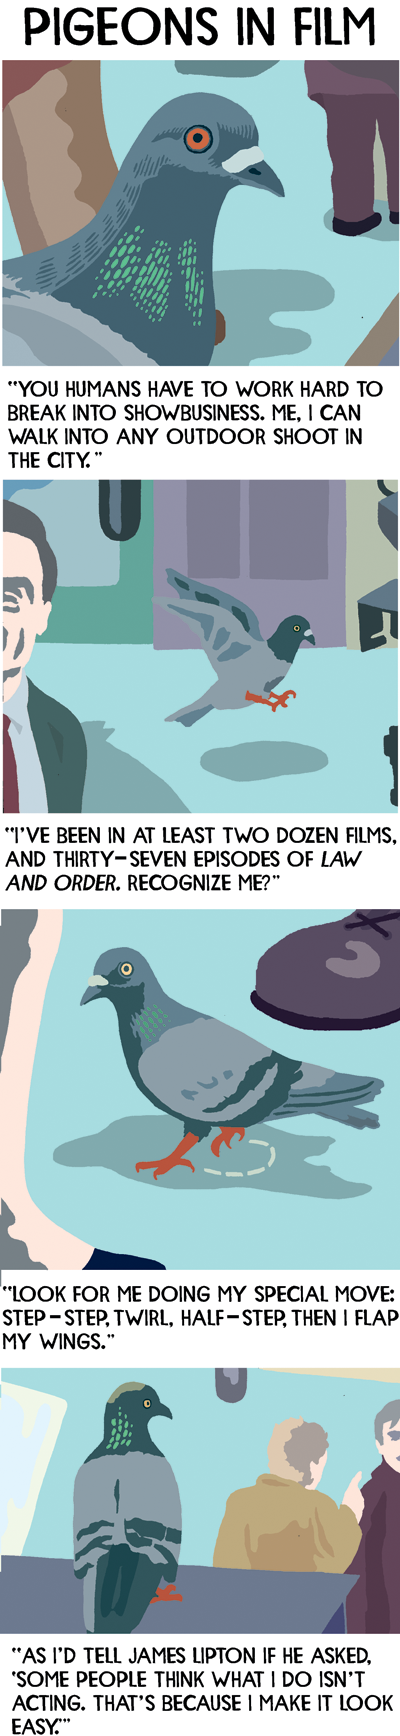 Pigeon-1.png